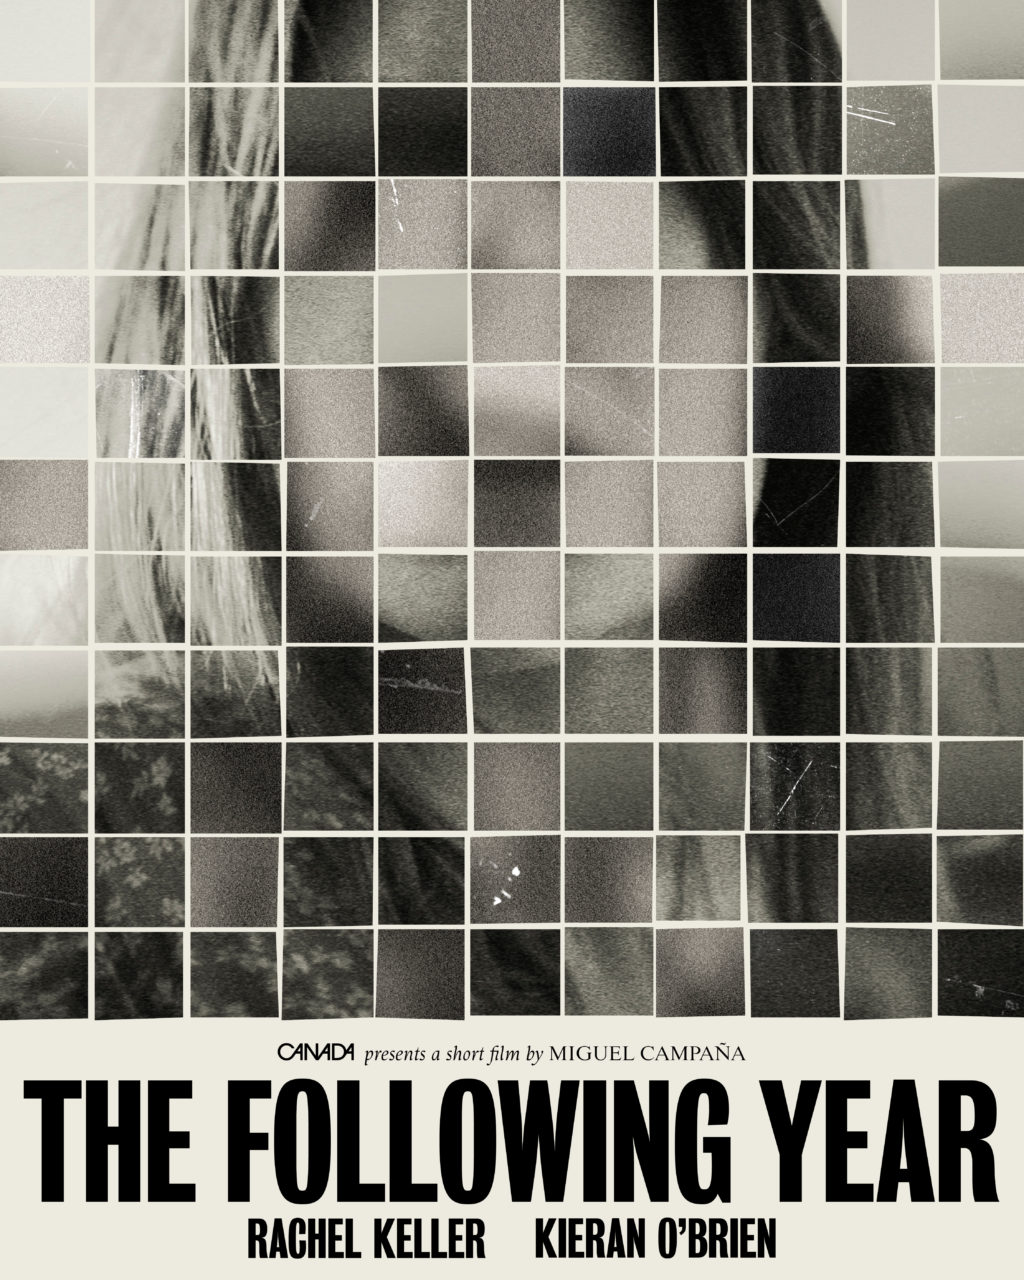 THE FOLLOWING YEAR | LANE CASTING